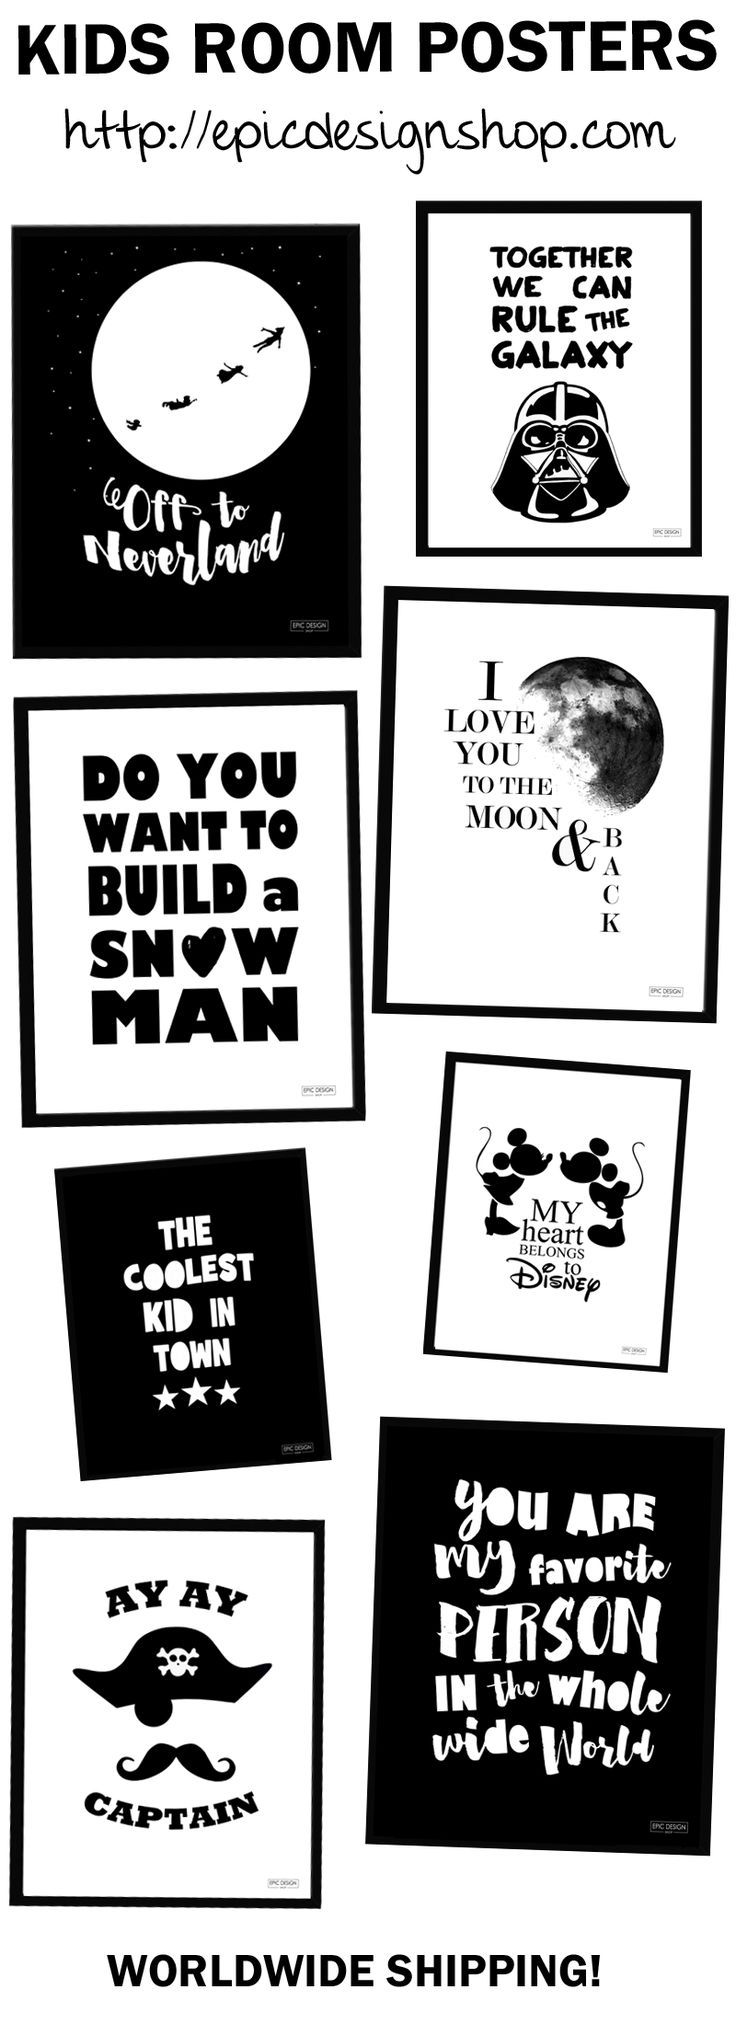 Print / poster universe for kids rooms and your home in my webshop - http://epicdesignshop.com. I offer worldwide shipping and also accept special orders.     Feel free to check out my blog as well - http://reidunbeate.com     kidsroom-prints-posters-plakat-barnerom-barnrum-nettbutikk-shop-webshop-worldwide-shipping-star-wars-pirate-sjørøver-favorite-person-coolest-kid-darth-vader-moon-back-disney-mickey-mouse-nursery--printable-download-buy-animal-dream-neverland-peter-pan-frozen